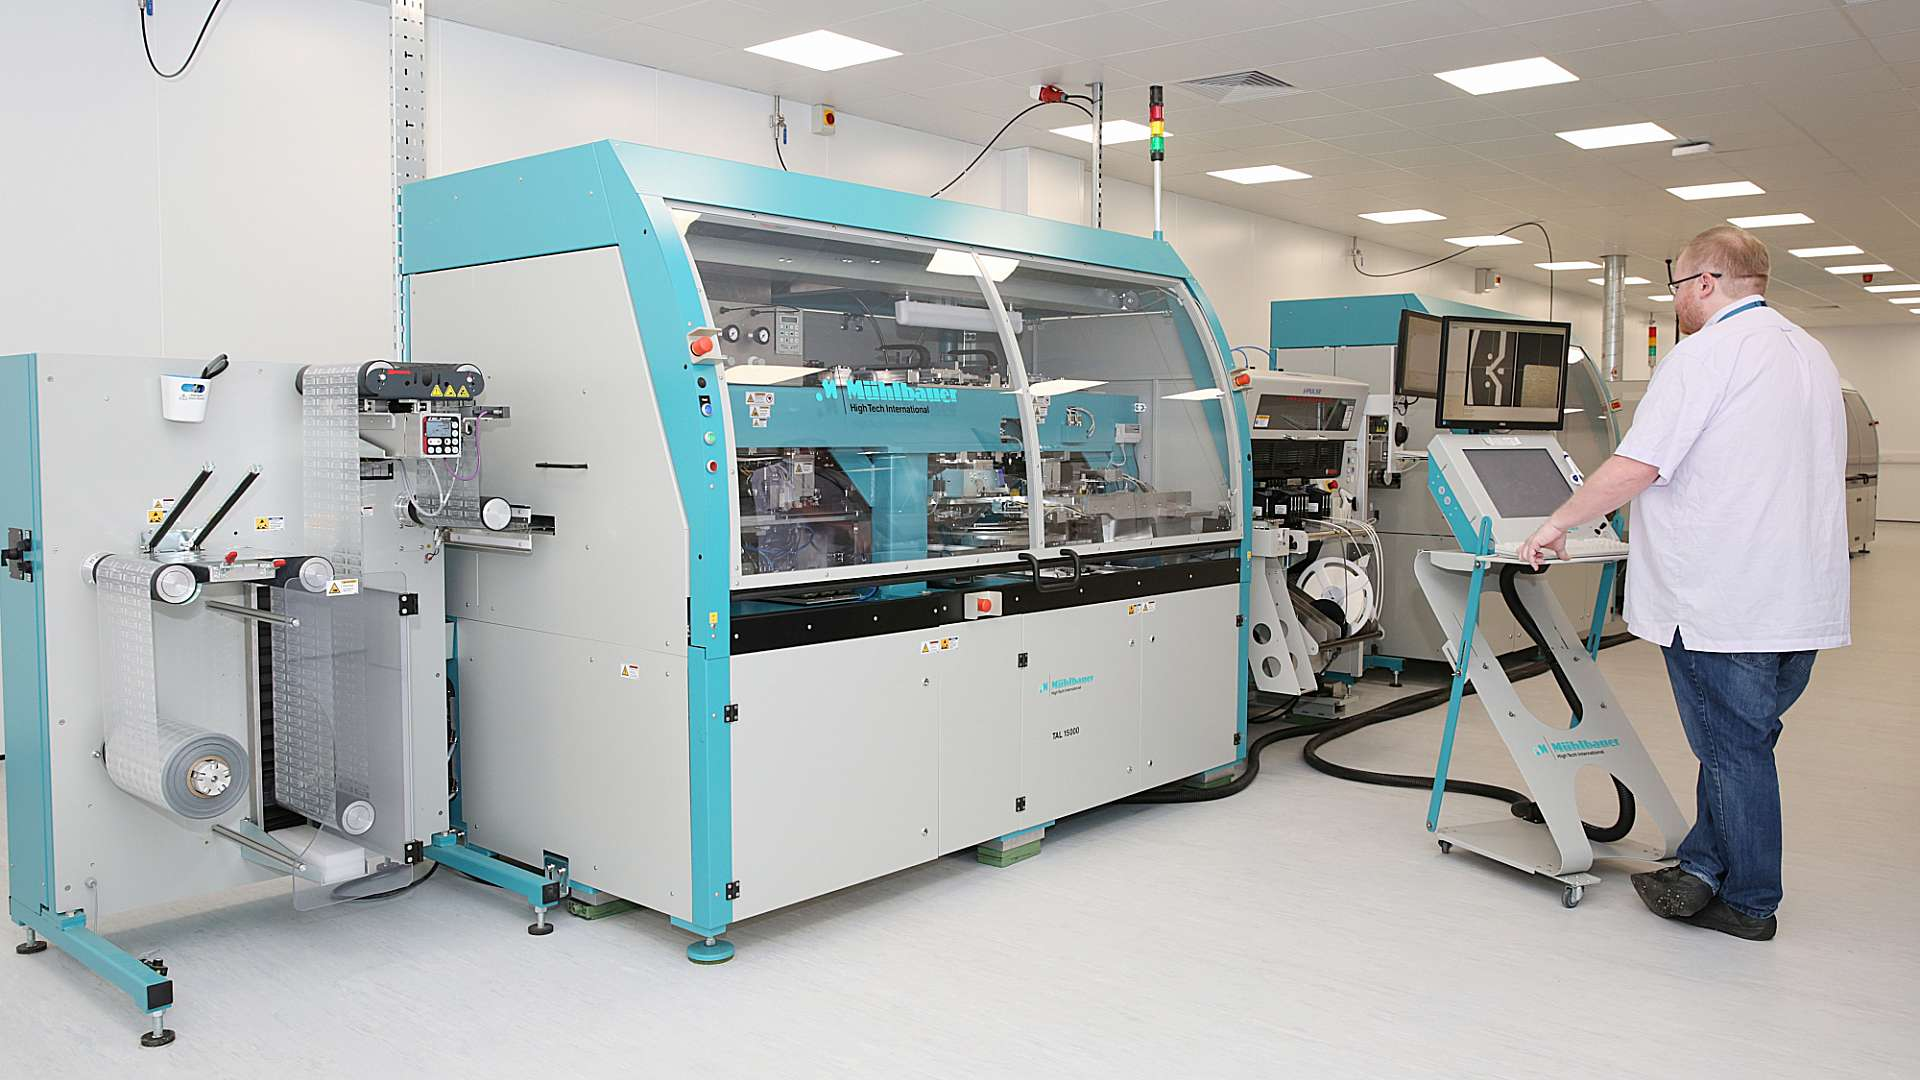 CPI's printable electronics facility houses unique, roll-to-roll manufacturing capabilities.